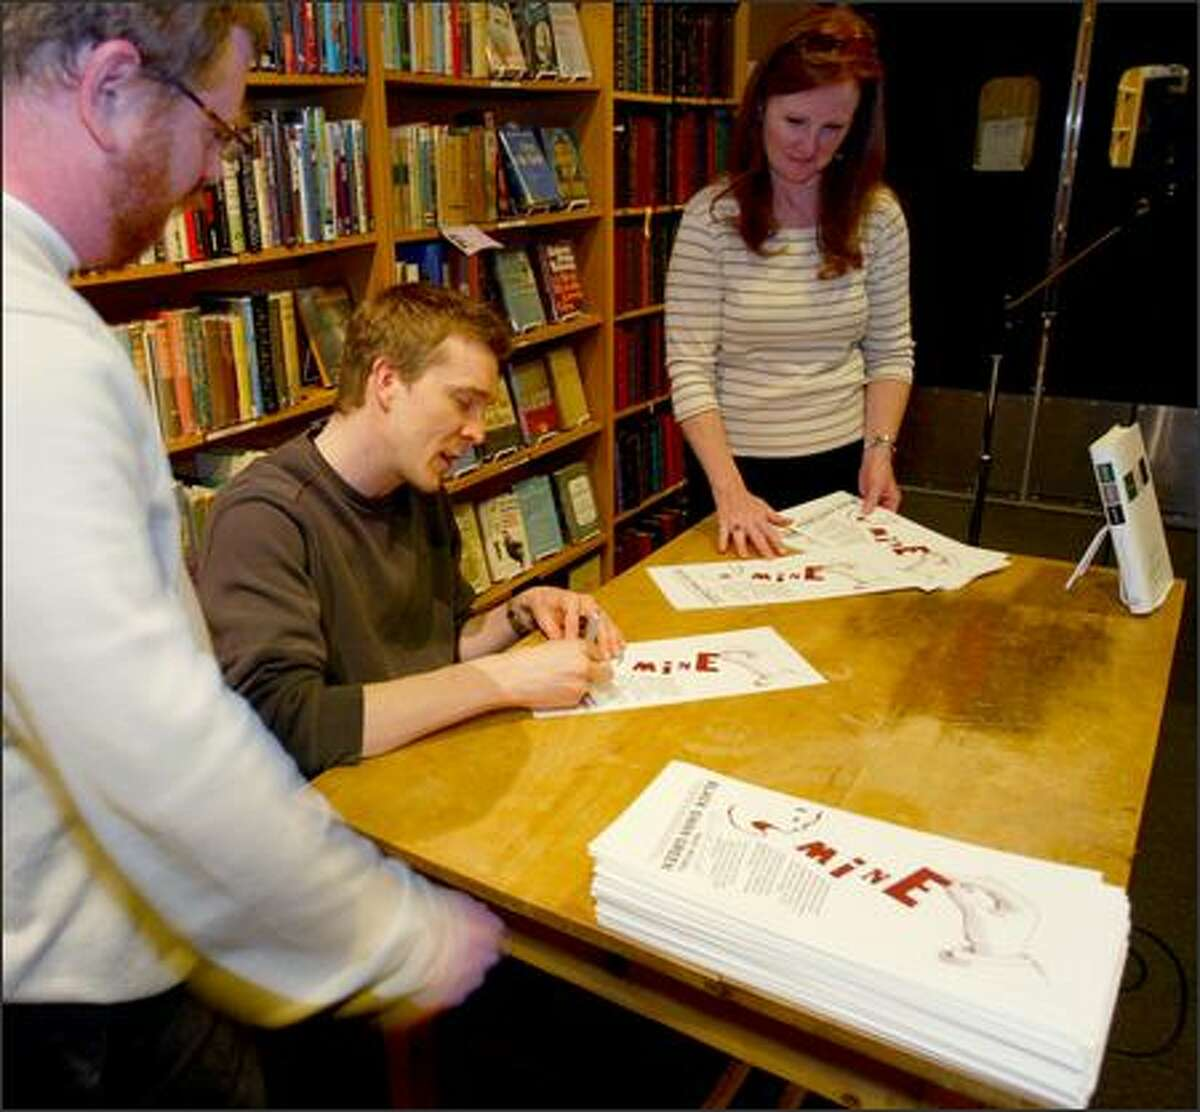 """""""Black Swan Green"""" author David Mitchell signs broadsides at Third Place Books April 26. With him are store managing partner Robert Sindelar, left, who had the idea for the broadsides, and Gail DiRe, the author's escort."""